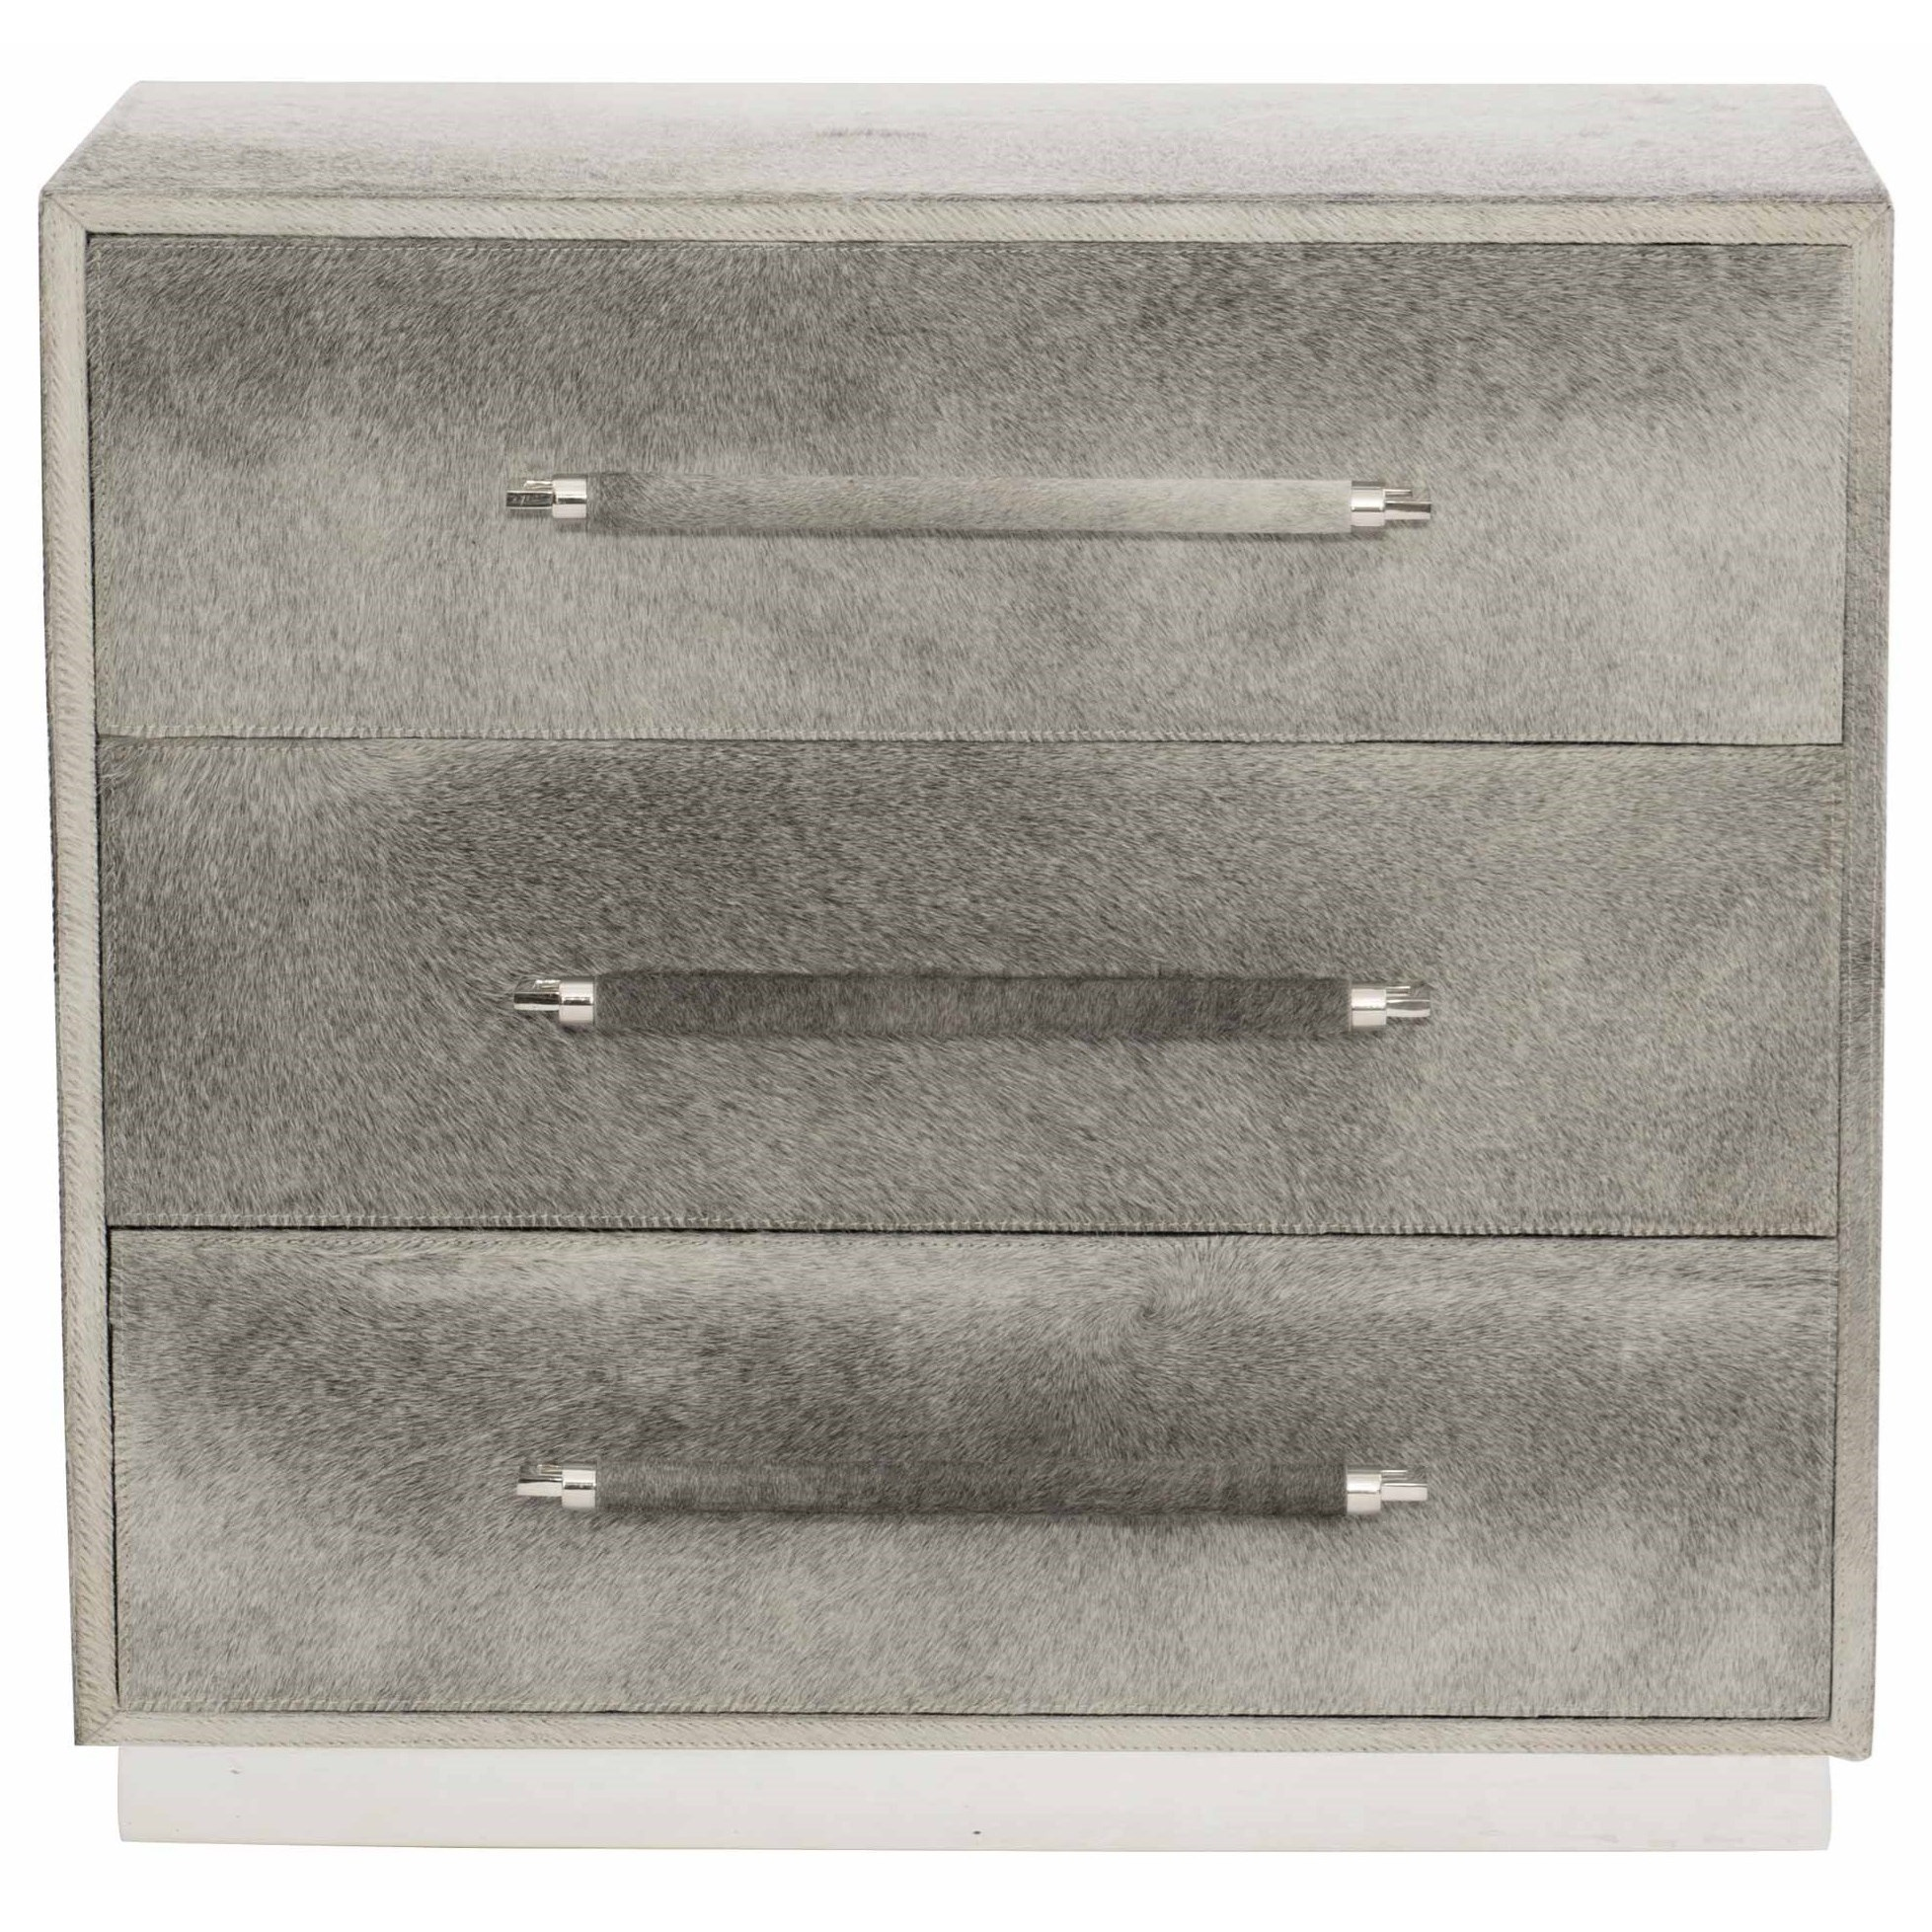 Interiors - Accents Parkin Nightstand by Bernhardt at Baer's Furniture